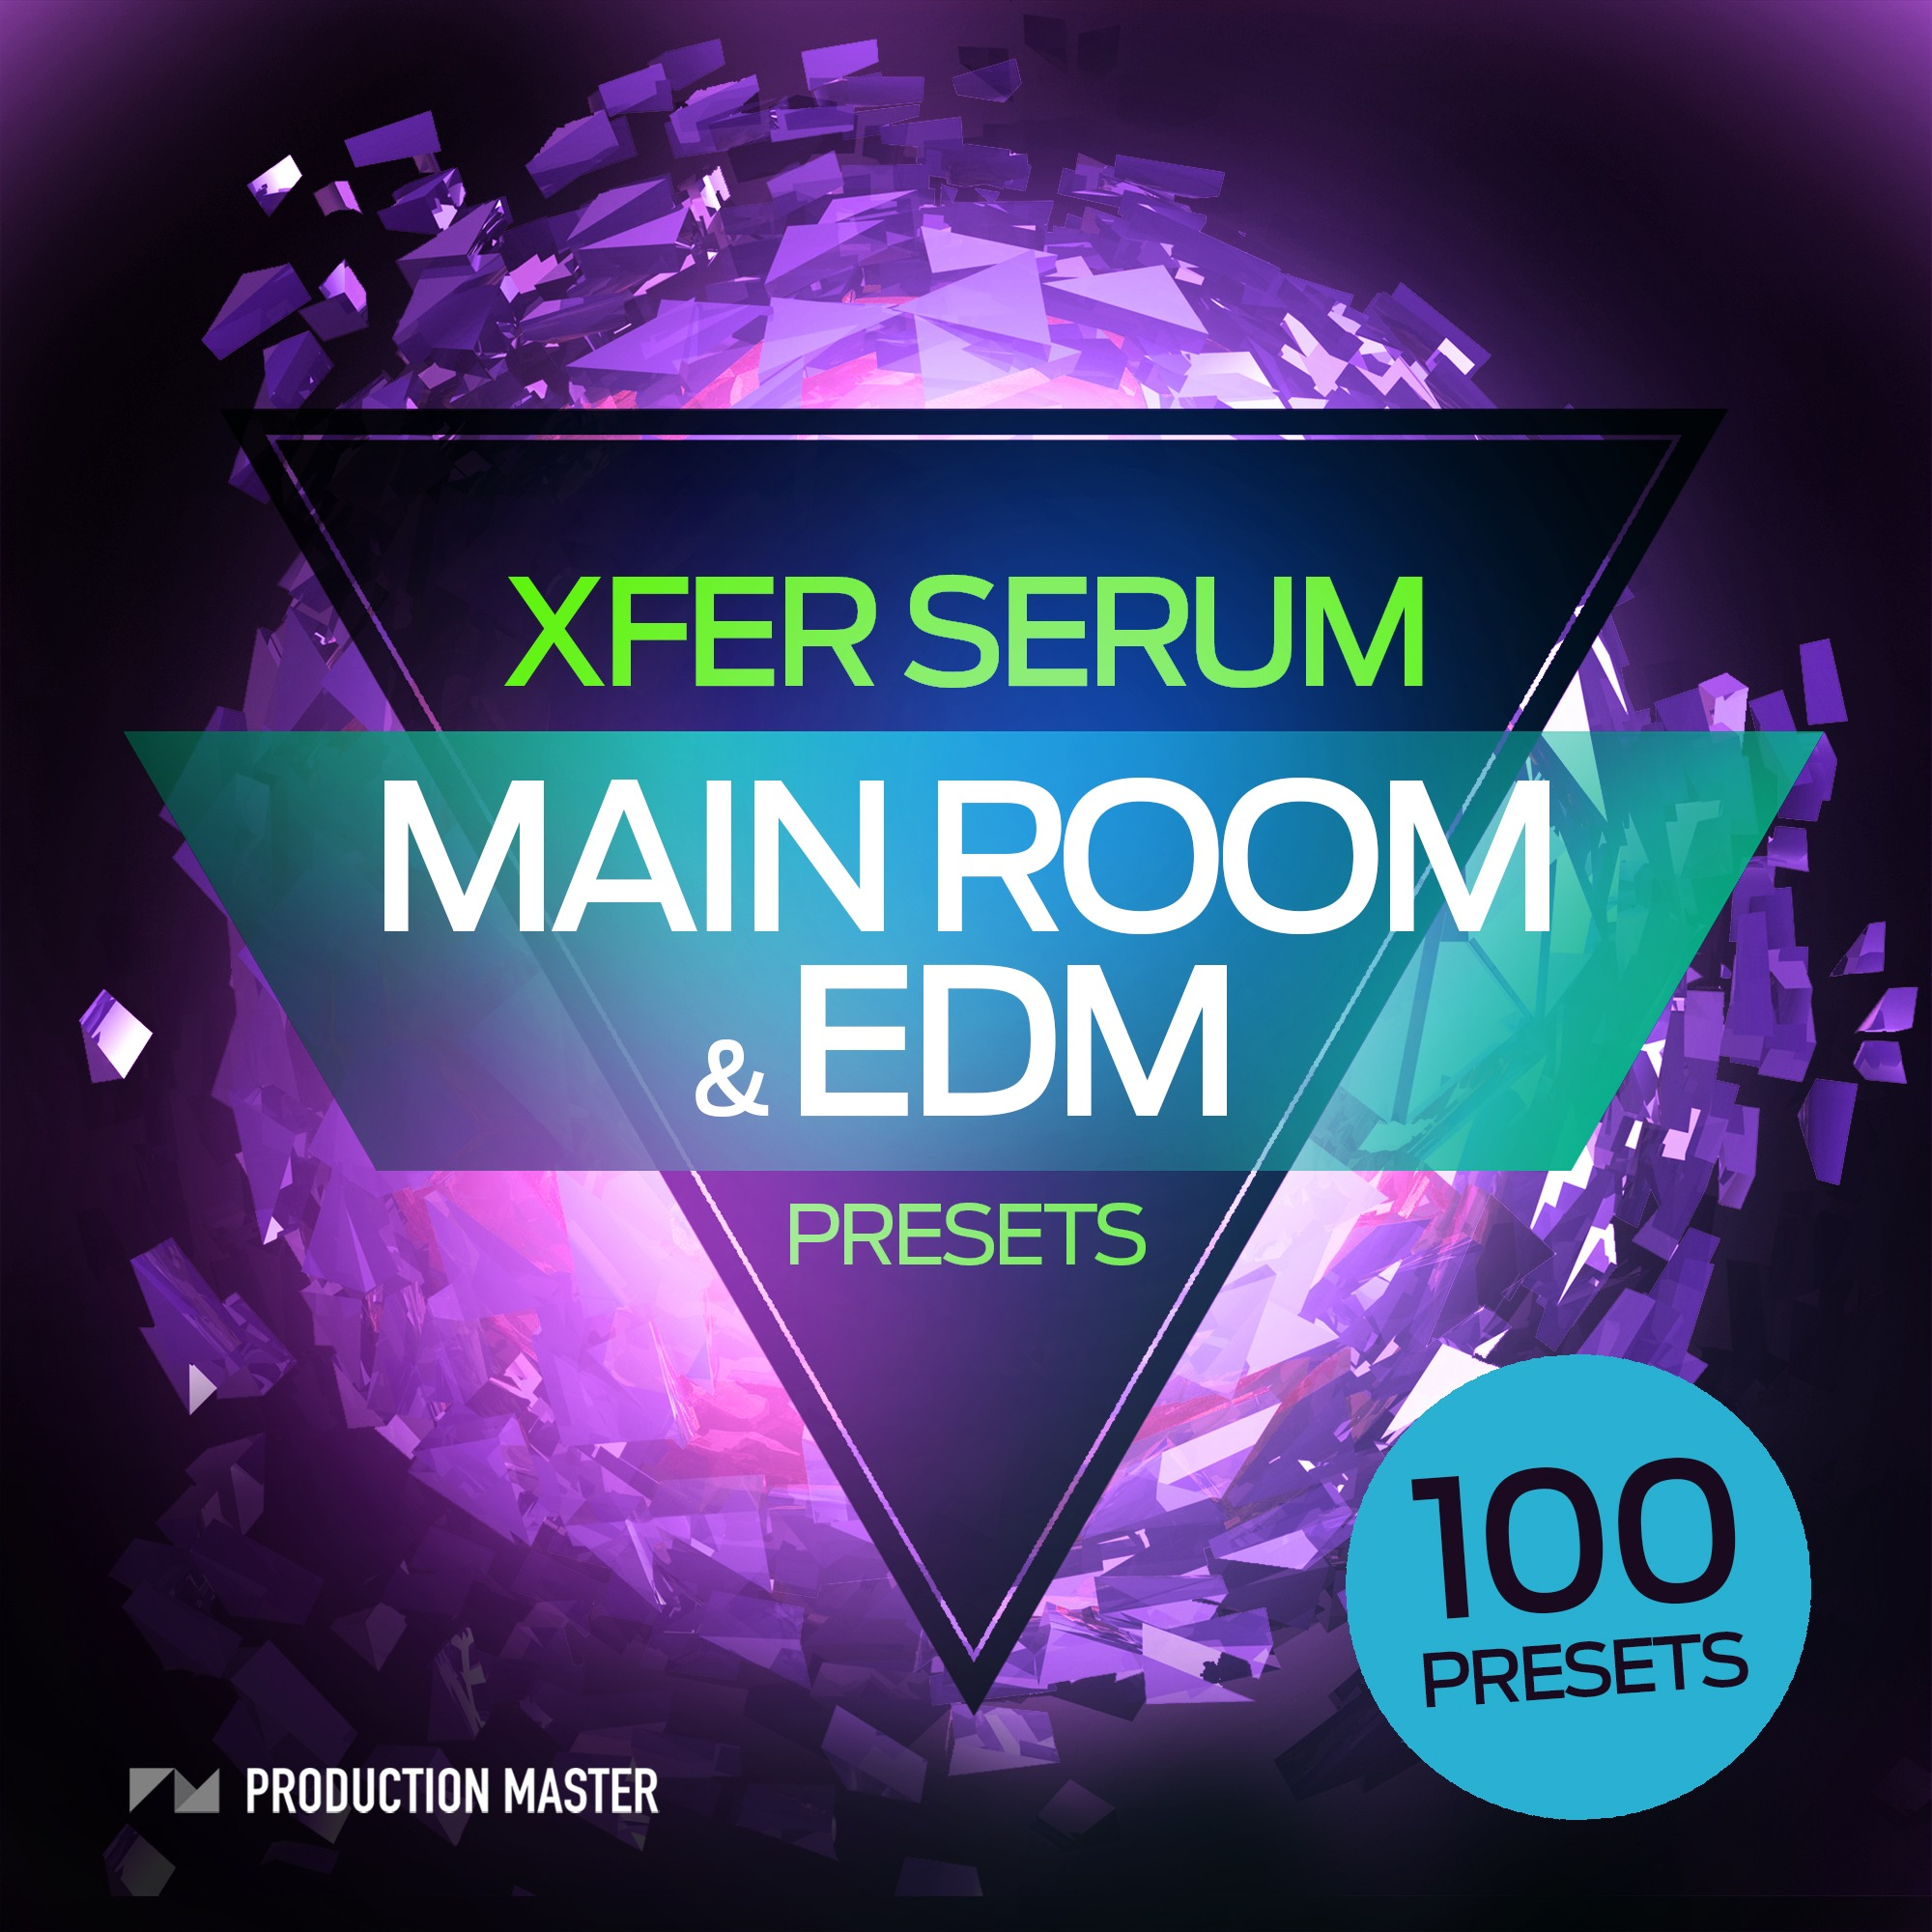 Xfer Serum presets – Main Room & EDM